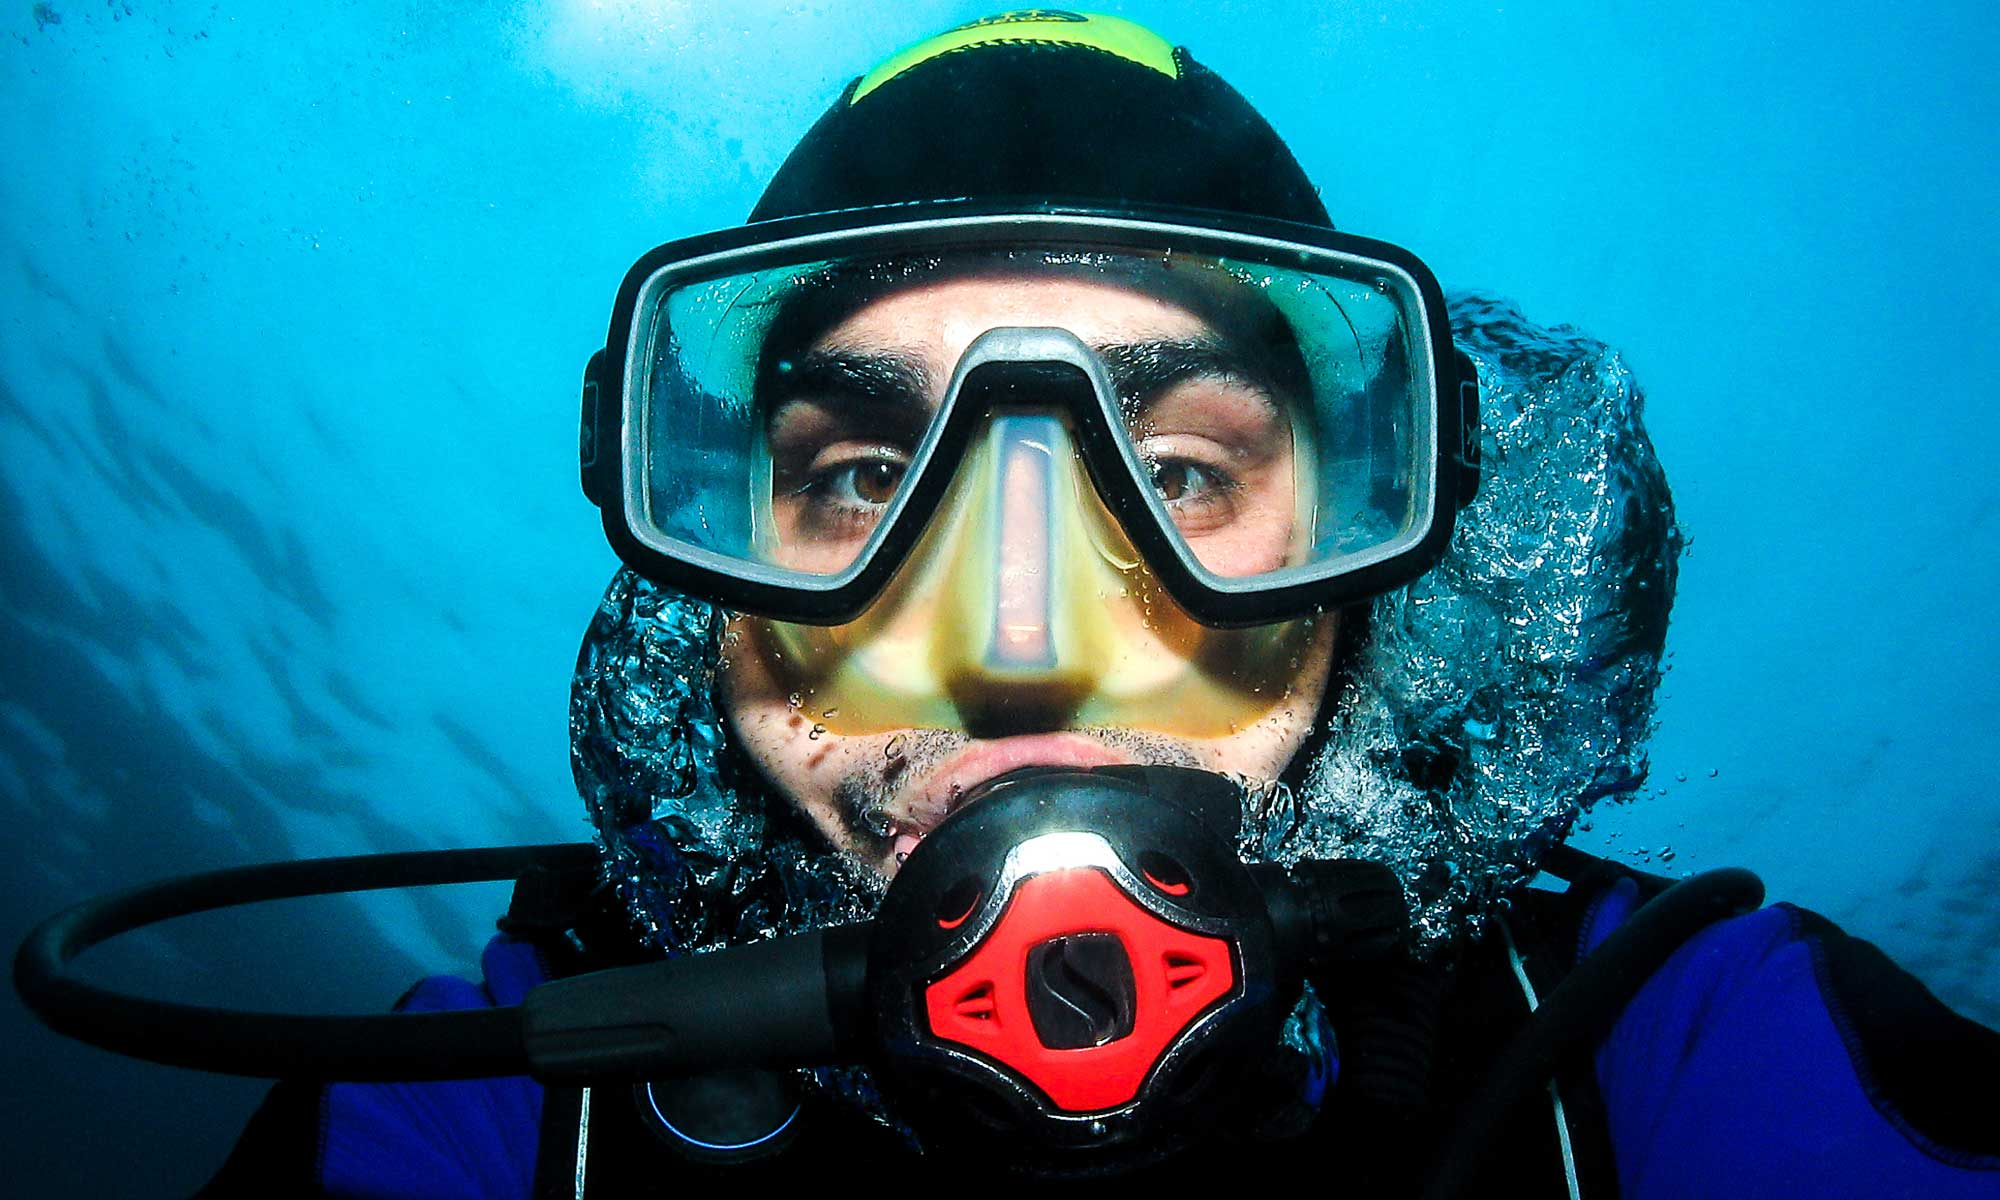 the diver takes a picture of his scuba mask